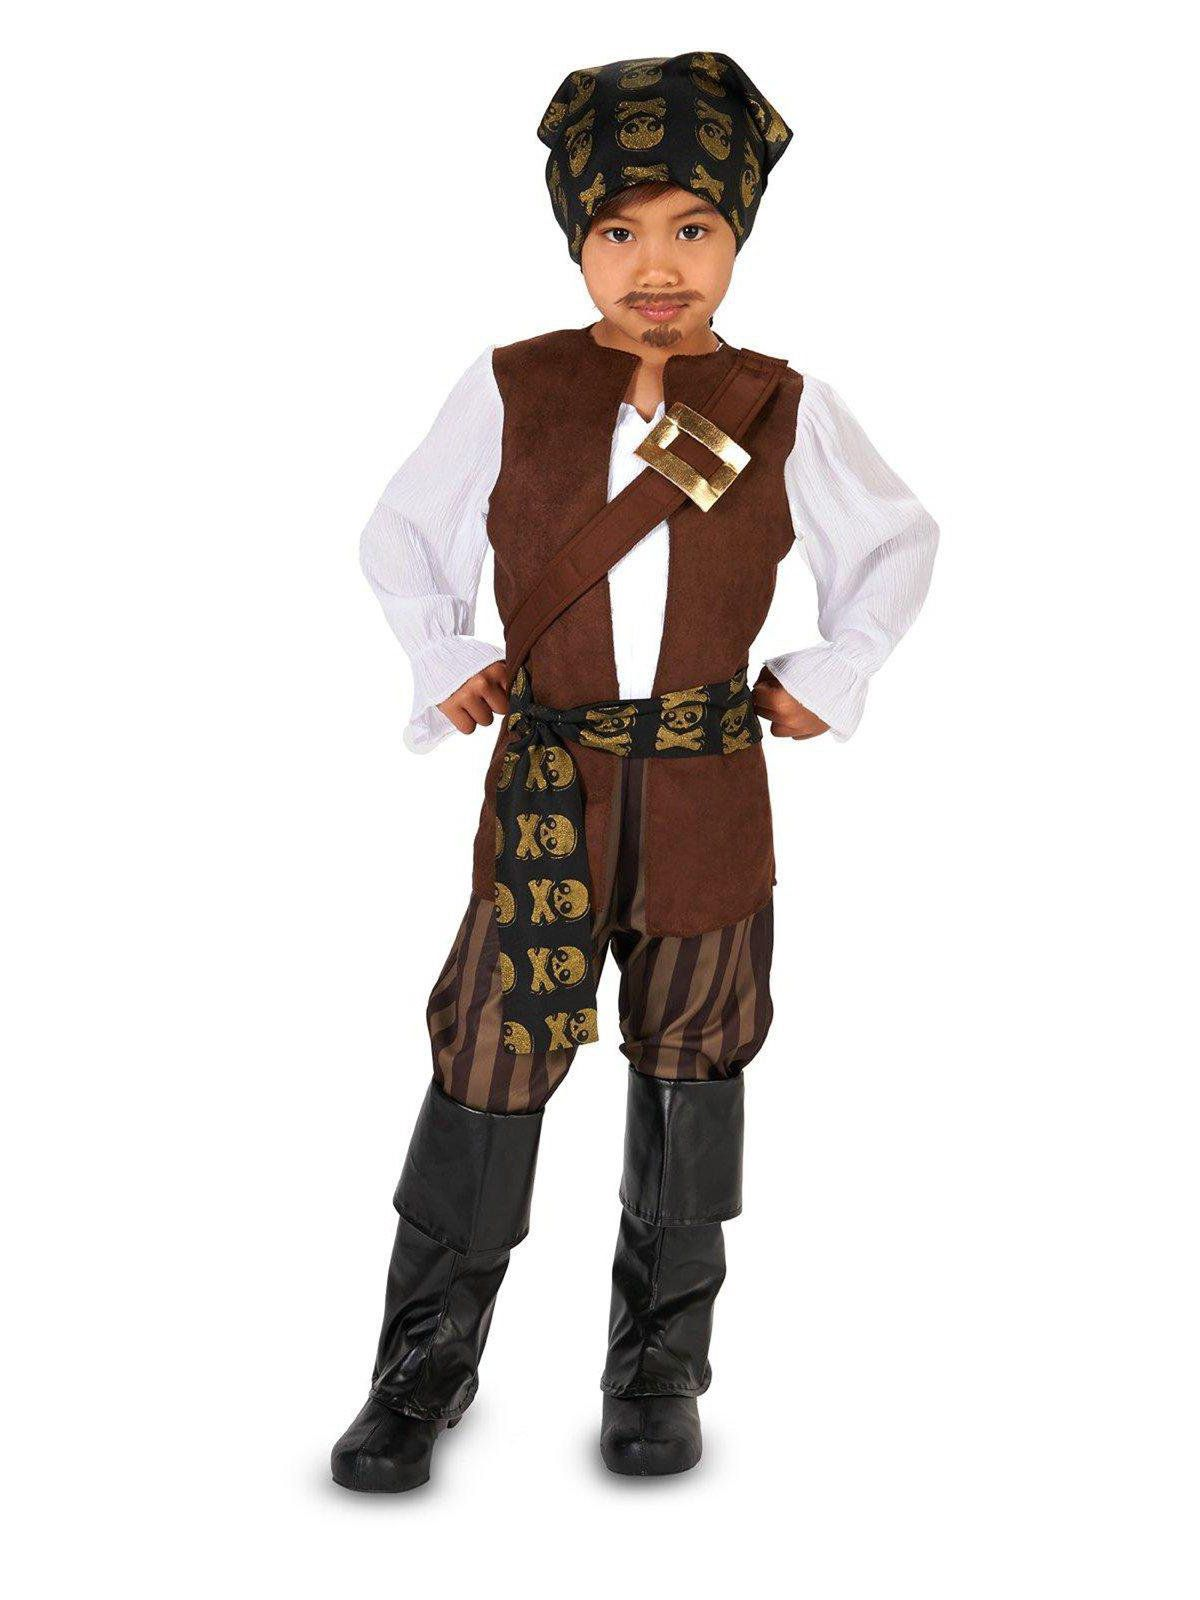 f23af657dd6 Arrrgh Pirate Infant Costume for Halloween - Baby/Toddler Costumes ...